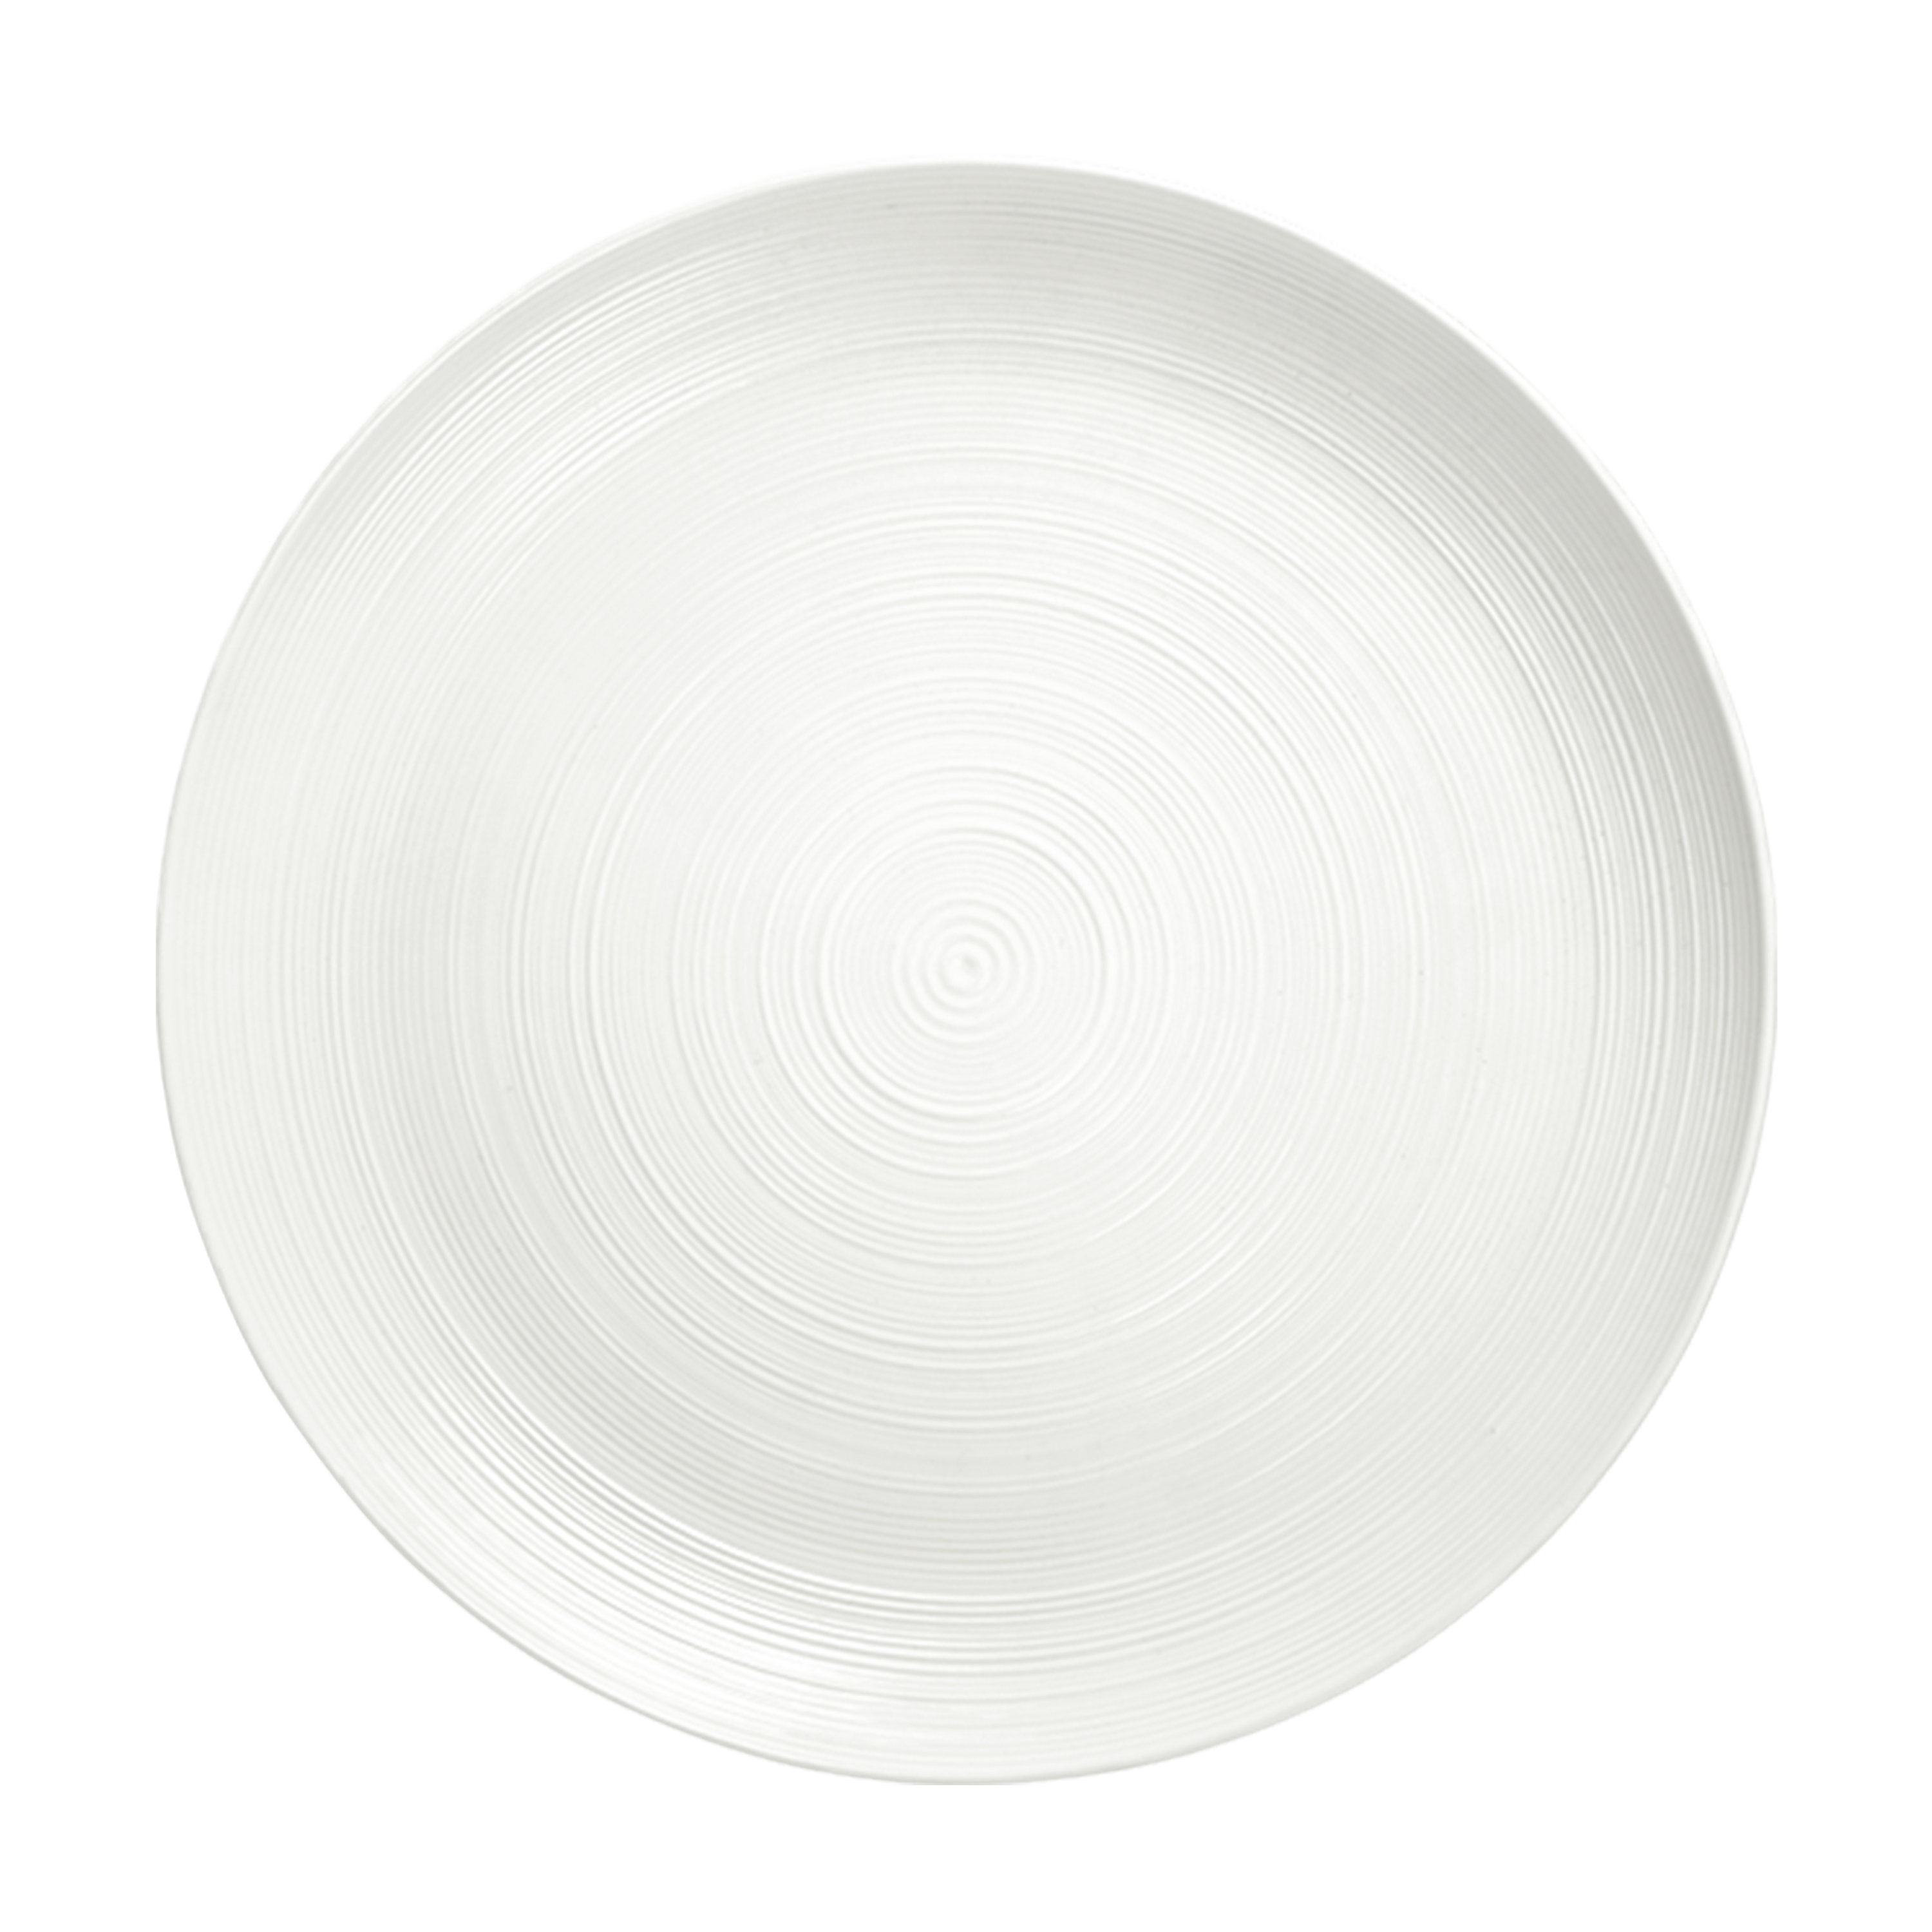 American Conventional Plate & Bowl Sets, White, 12-piece set slideshow image 5